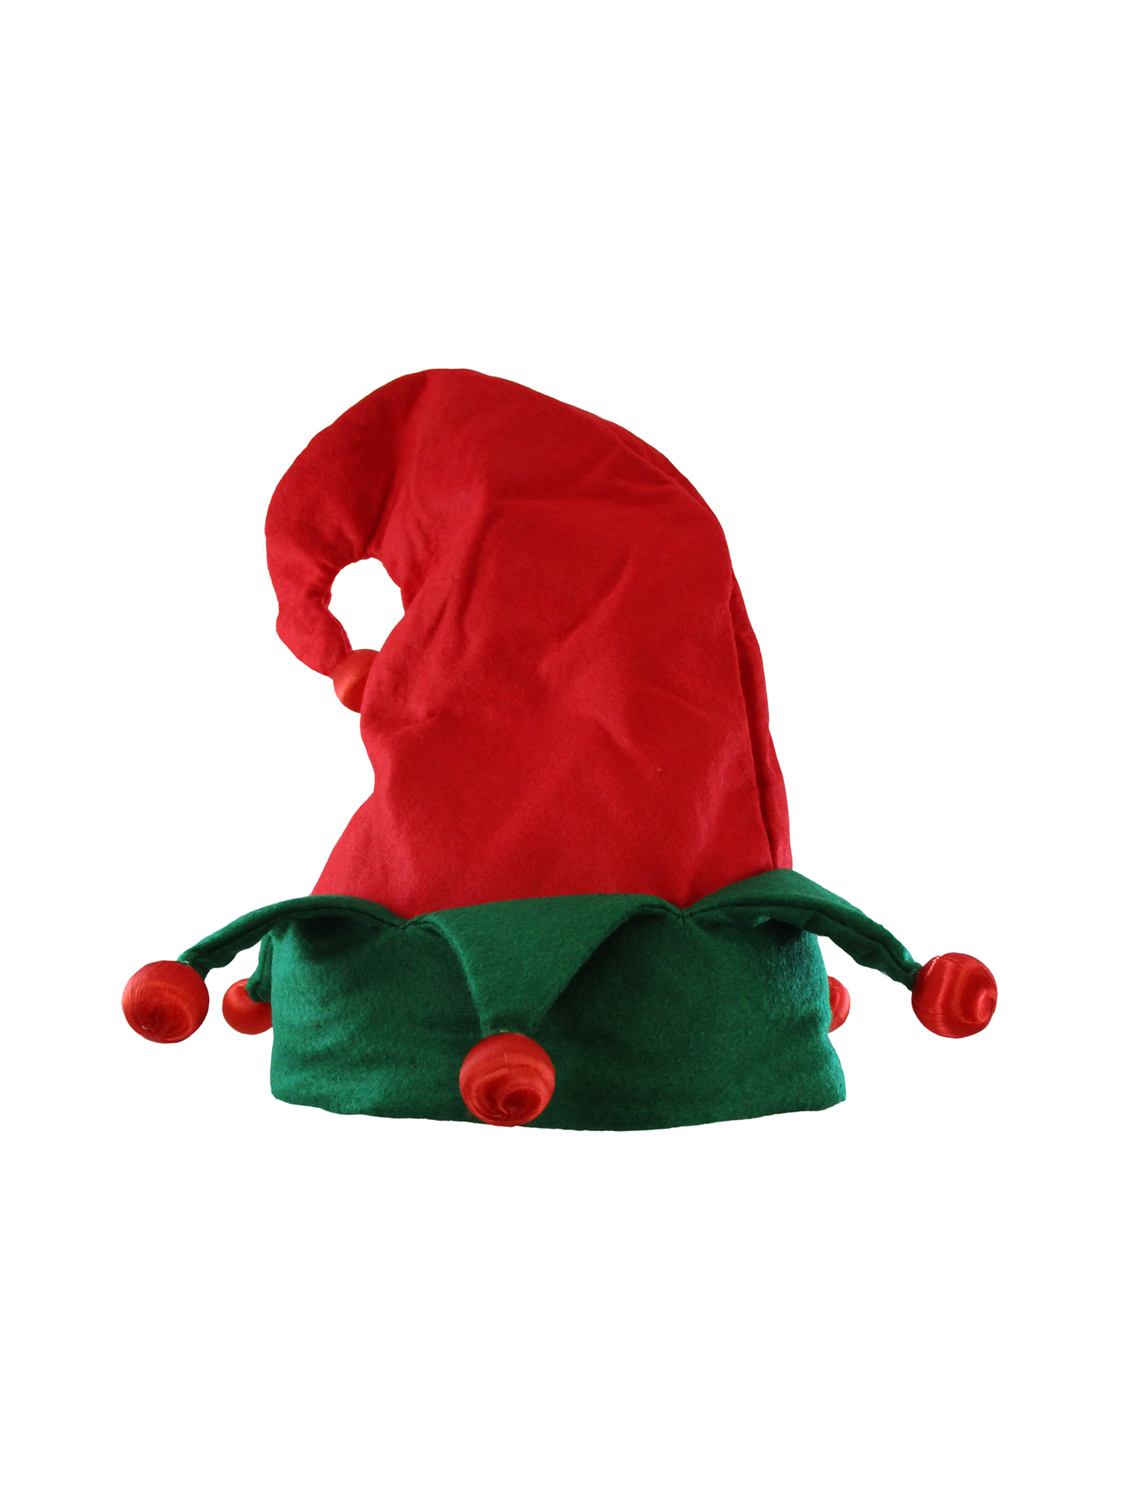 thumbnail 3 - Nicky-Bigs-Novelties-Light-Up-Elf-Hat-Costume-Accessory-Red-Green-One-Size